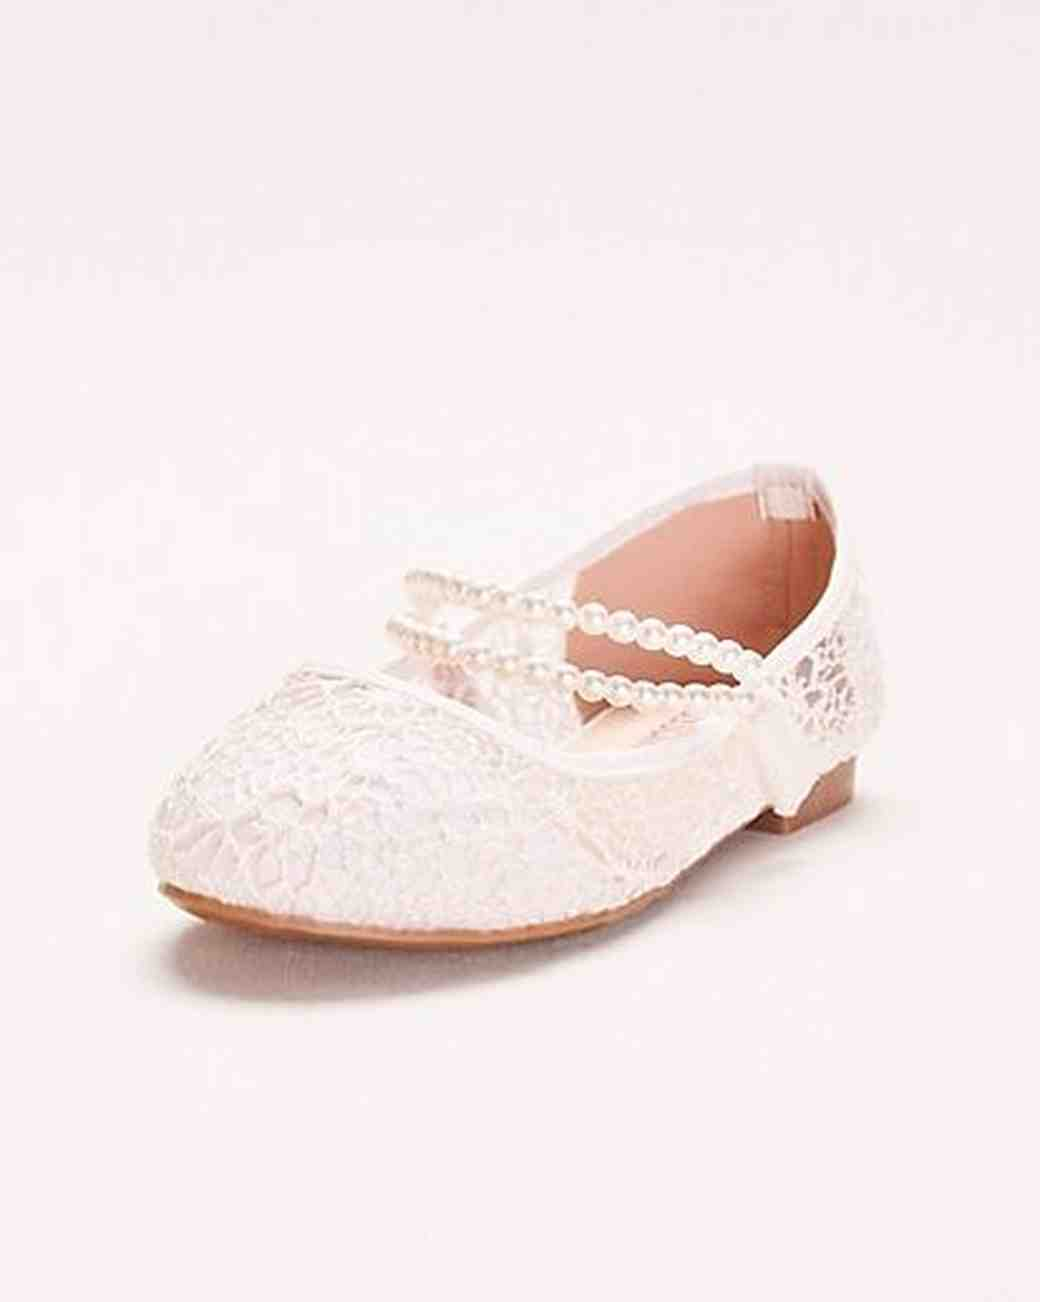 Adorable shoes to complete your flower girls big day look martha adorable shoes to complete your flower girls big day look martha stewart weddings mightylinksfo Choice Image